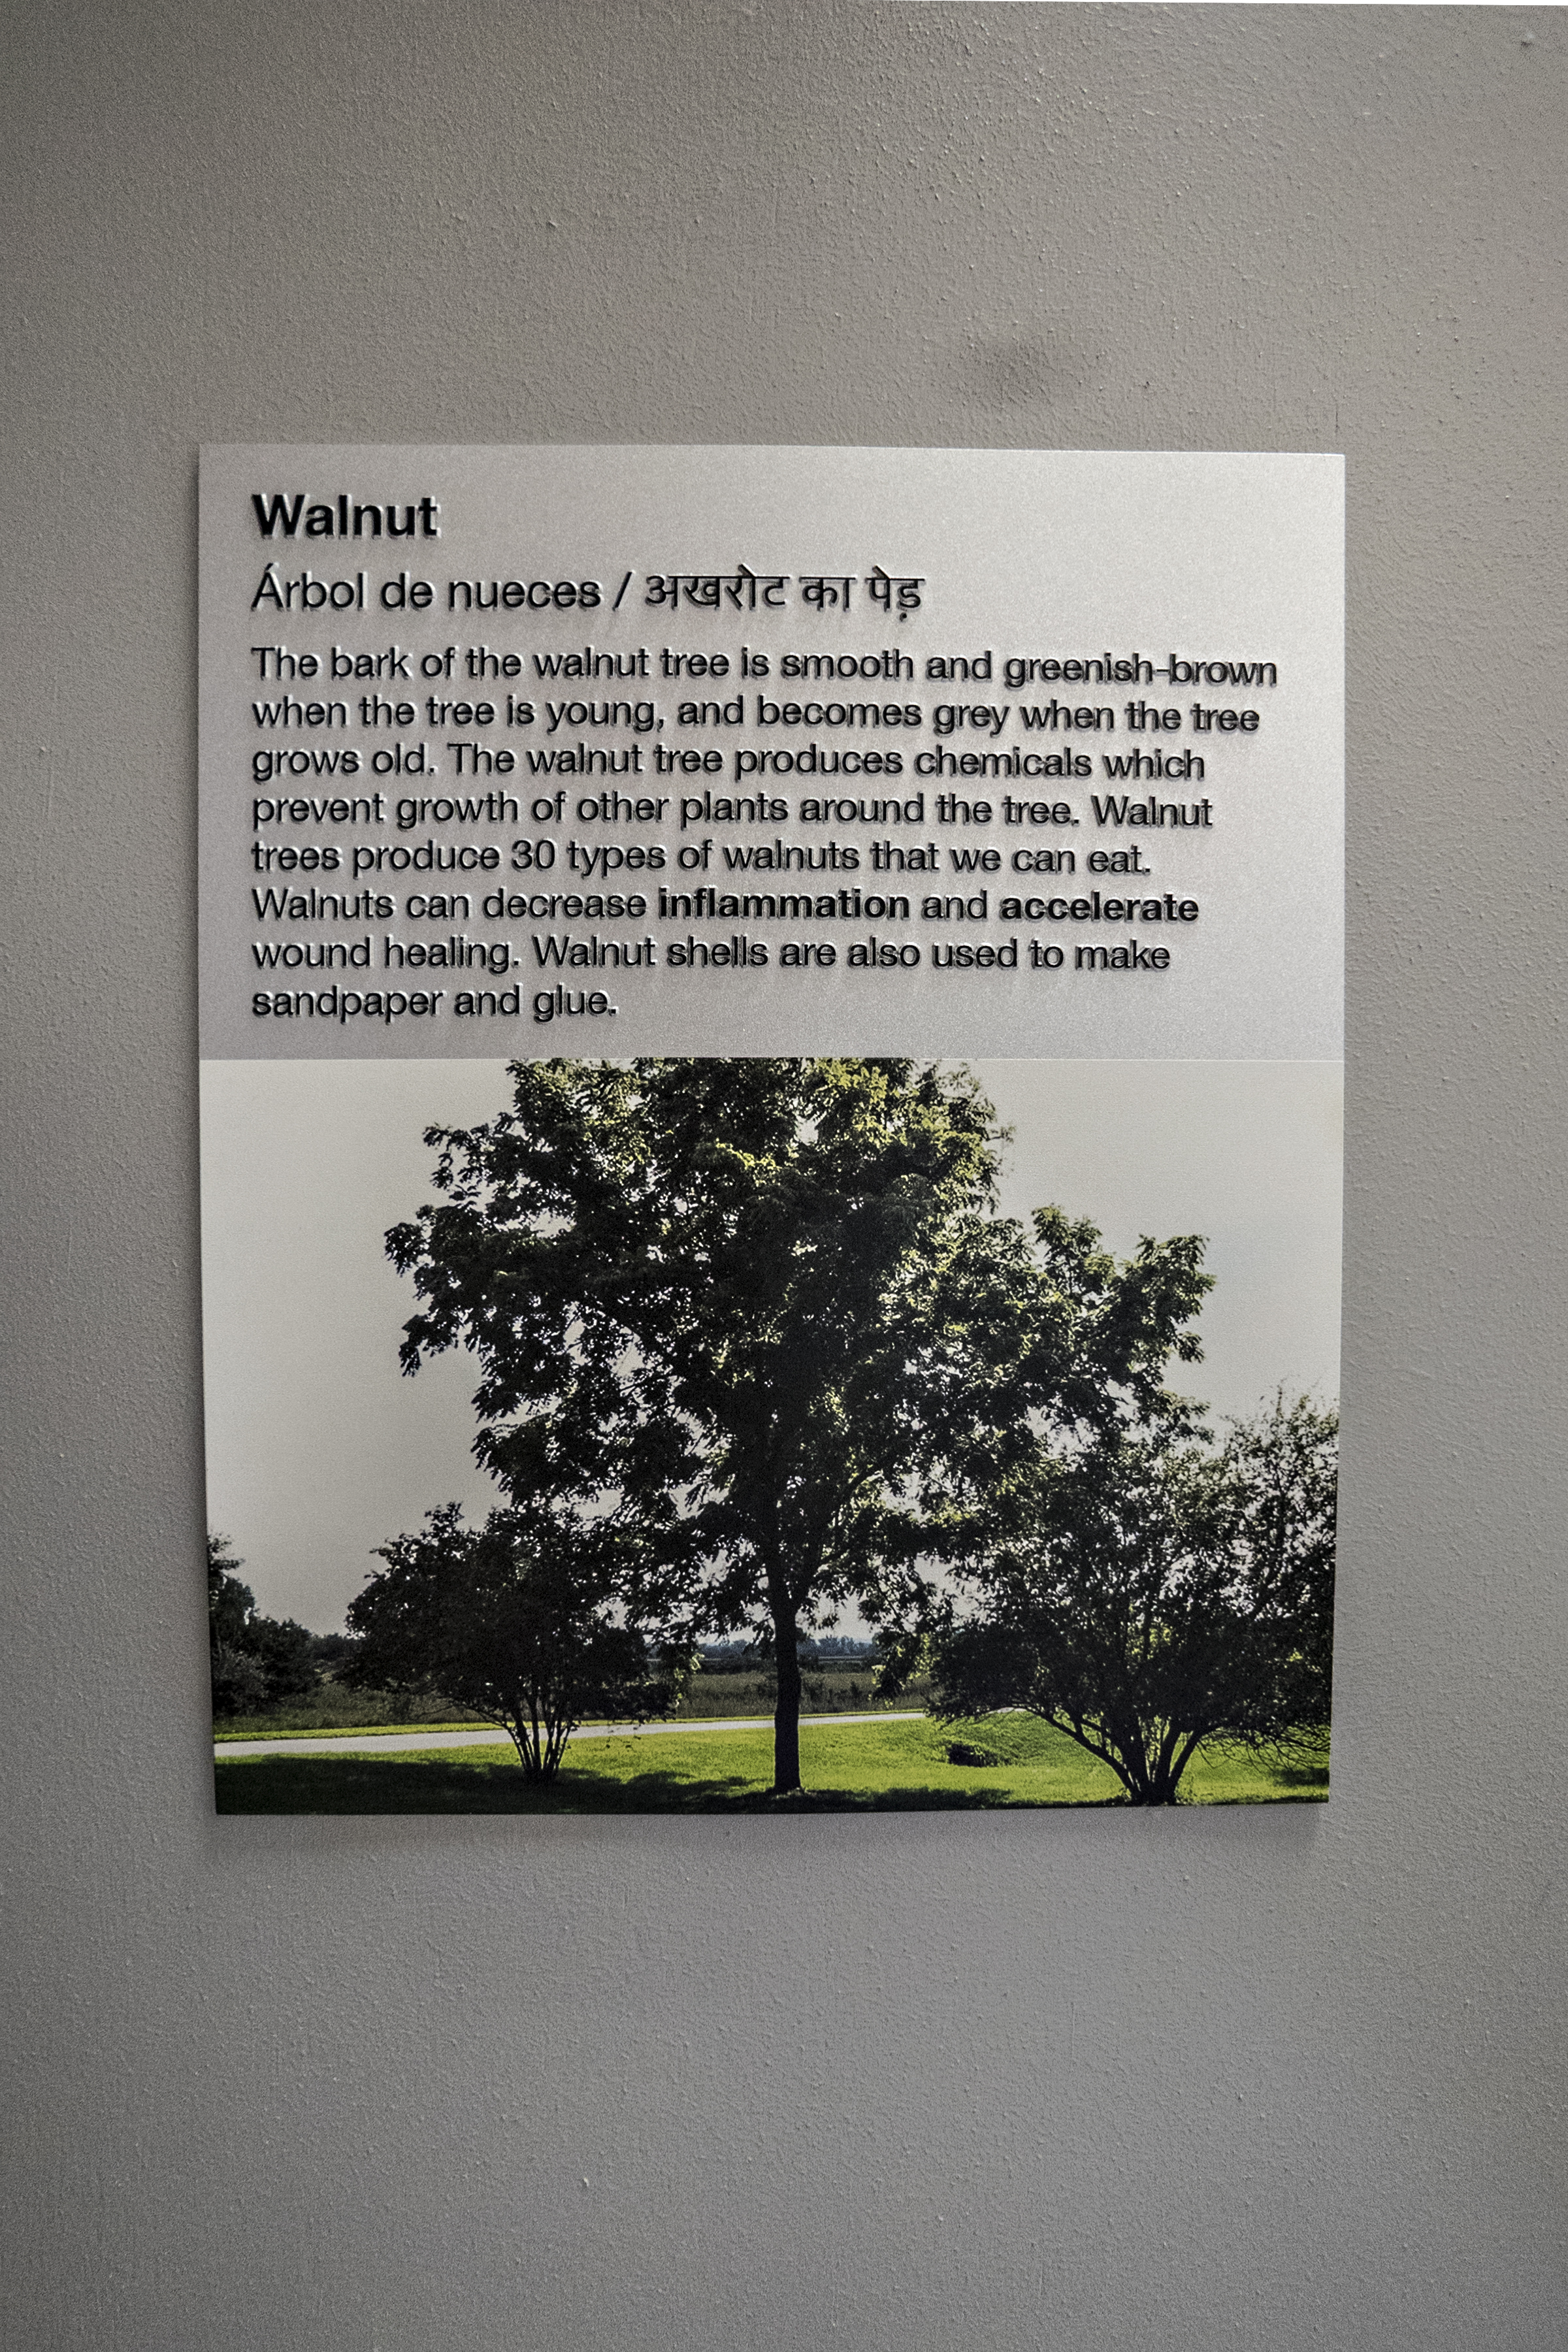 Located at the entrance to each classroom, this sign talks about the native tree that the classroom was named after.